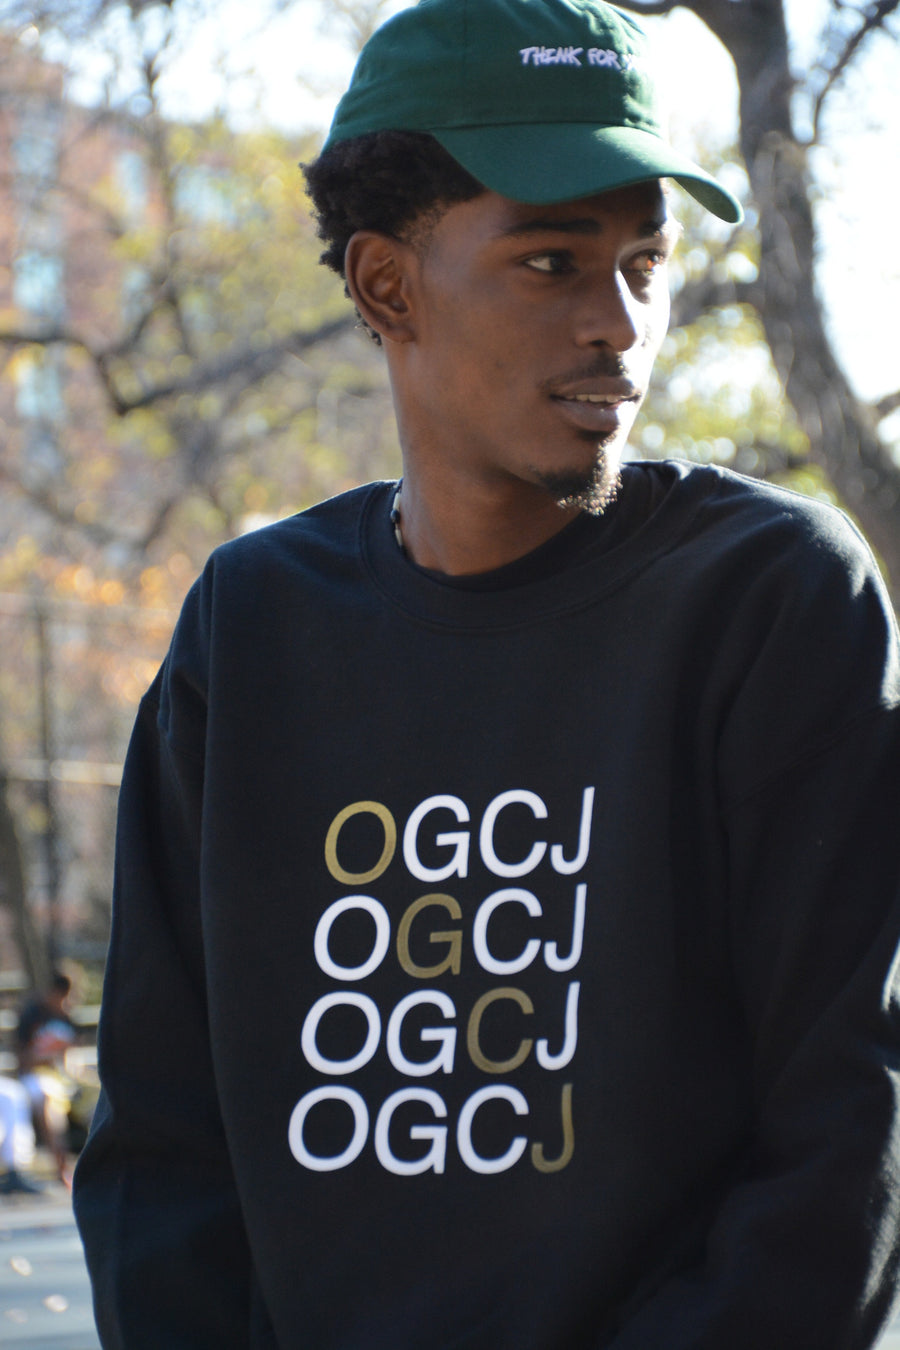 Connect 4 Crewneck Sweatshirt*